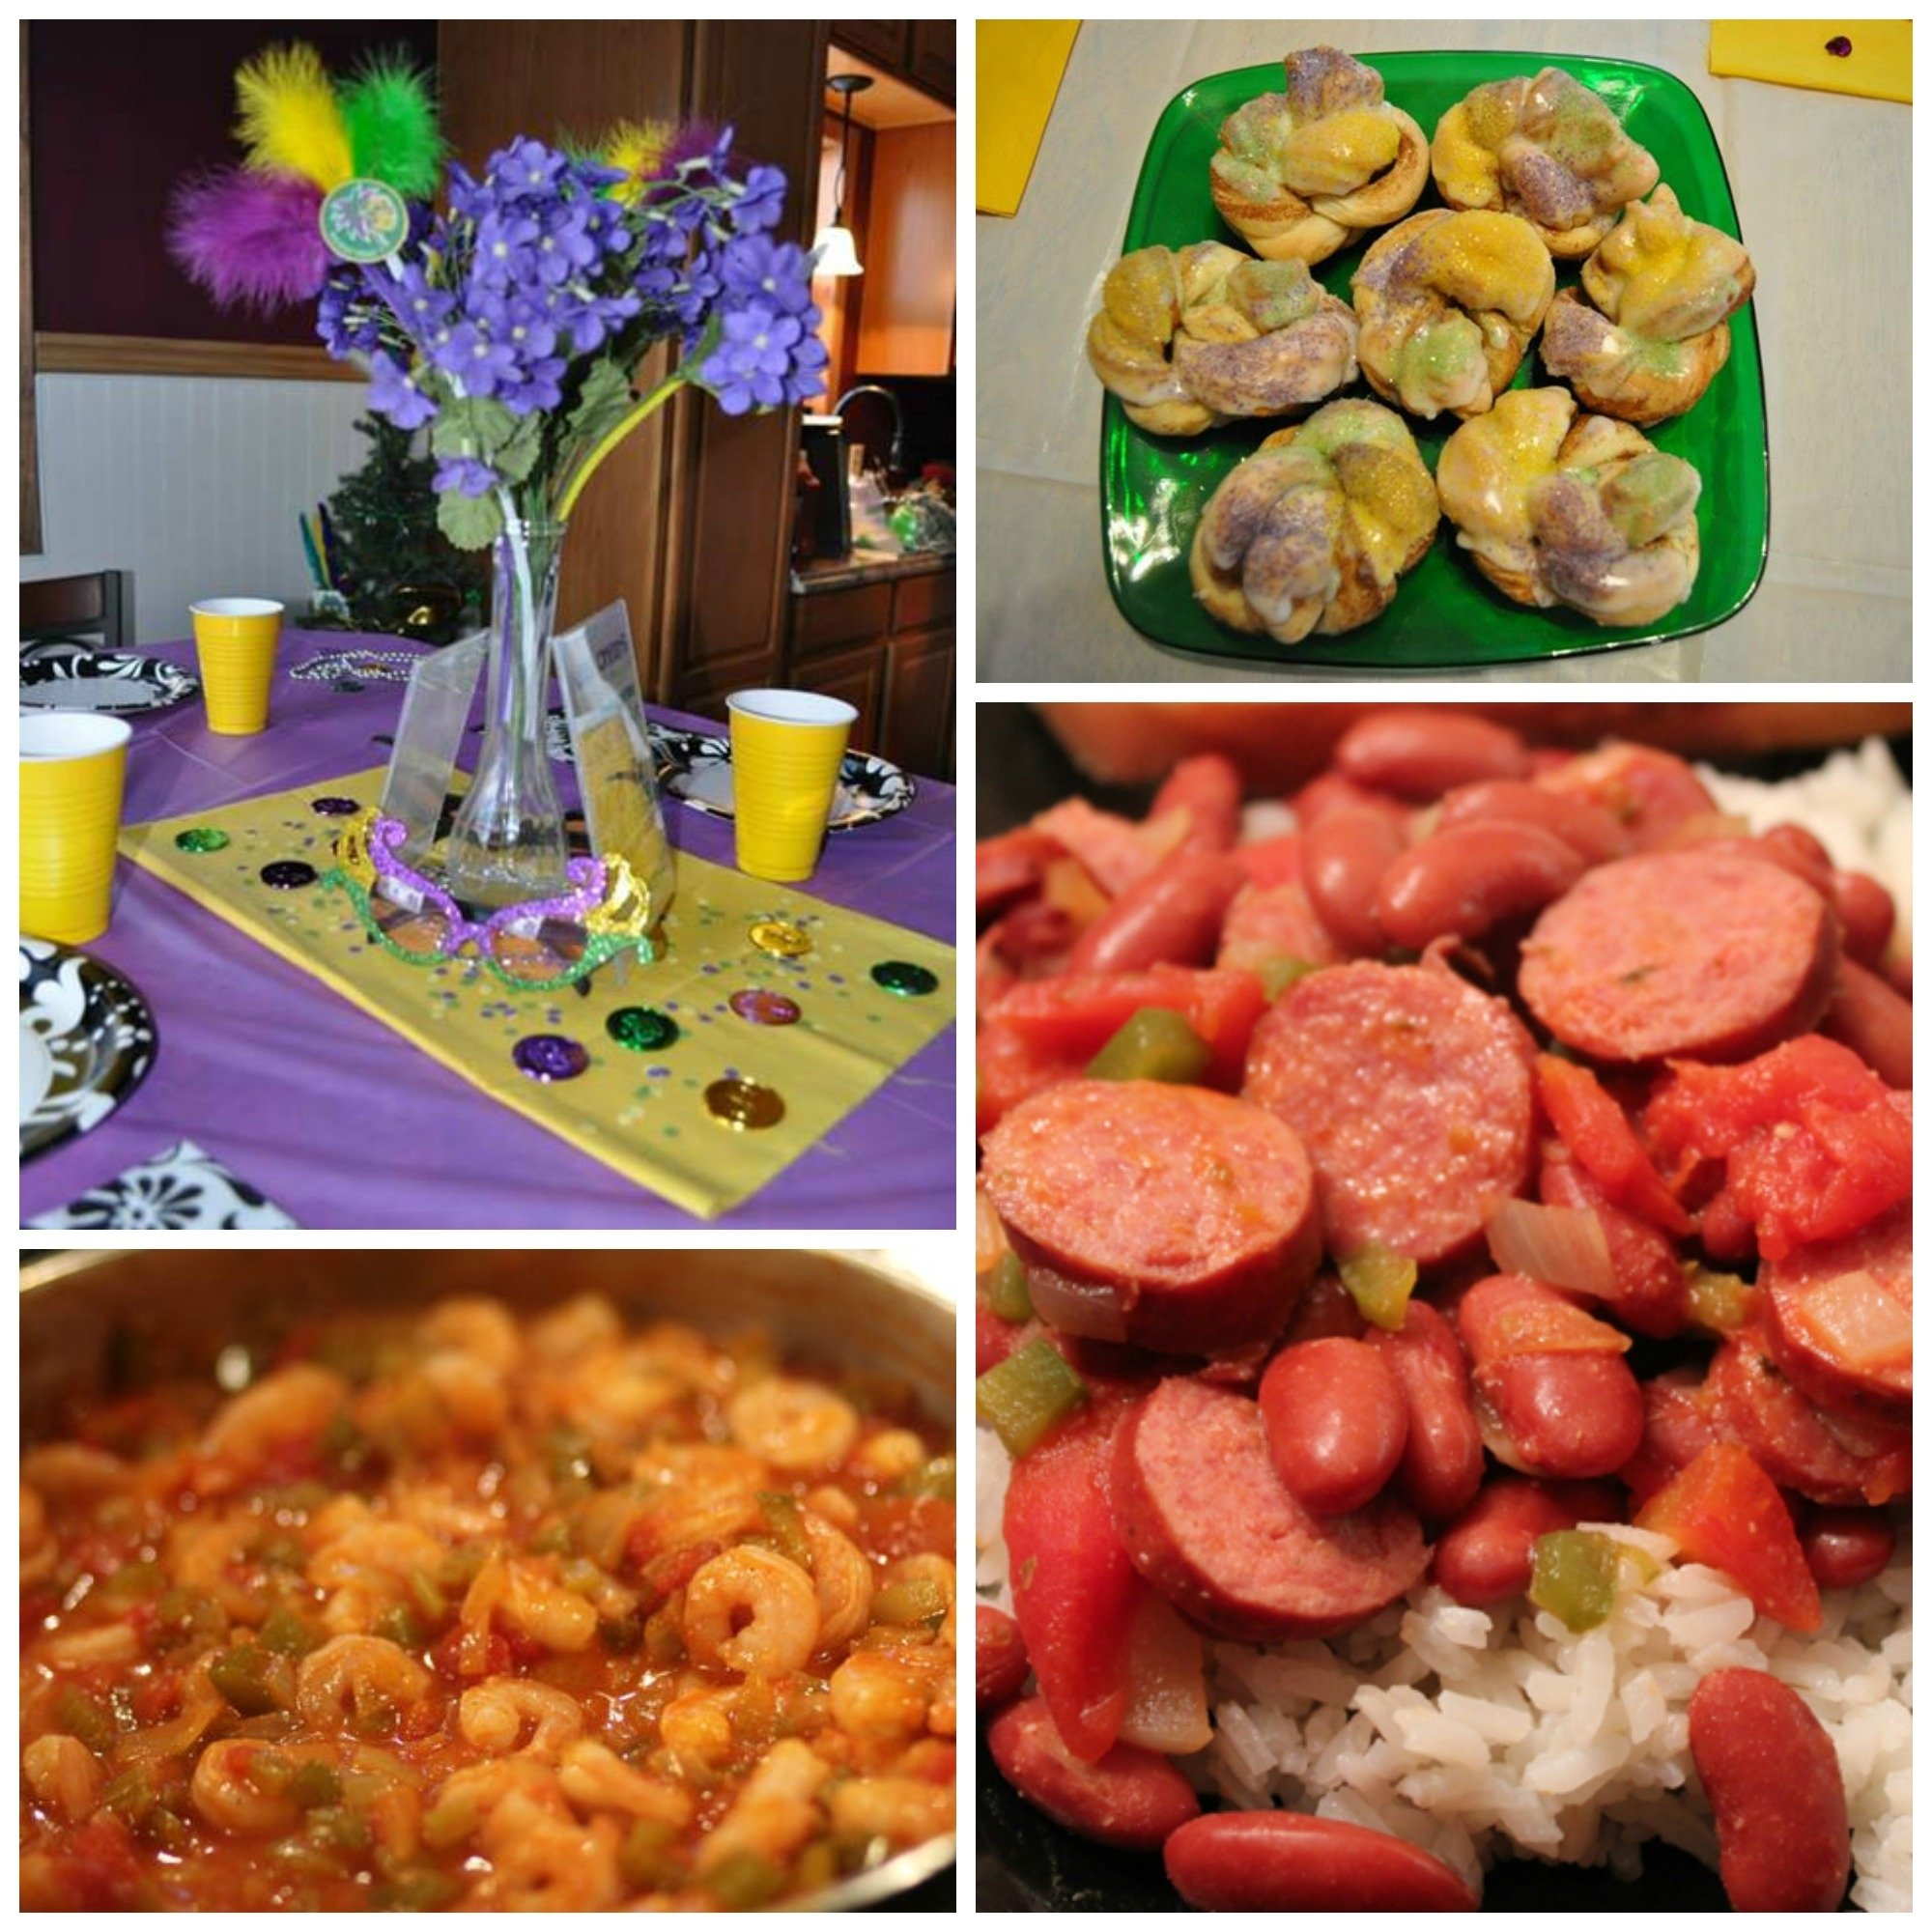 10 Most Recommended Mardi Gras Ideas For A Party mardi gras party ideas and recipes mommysavers 2020